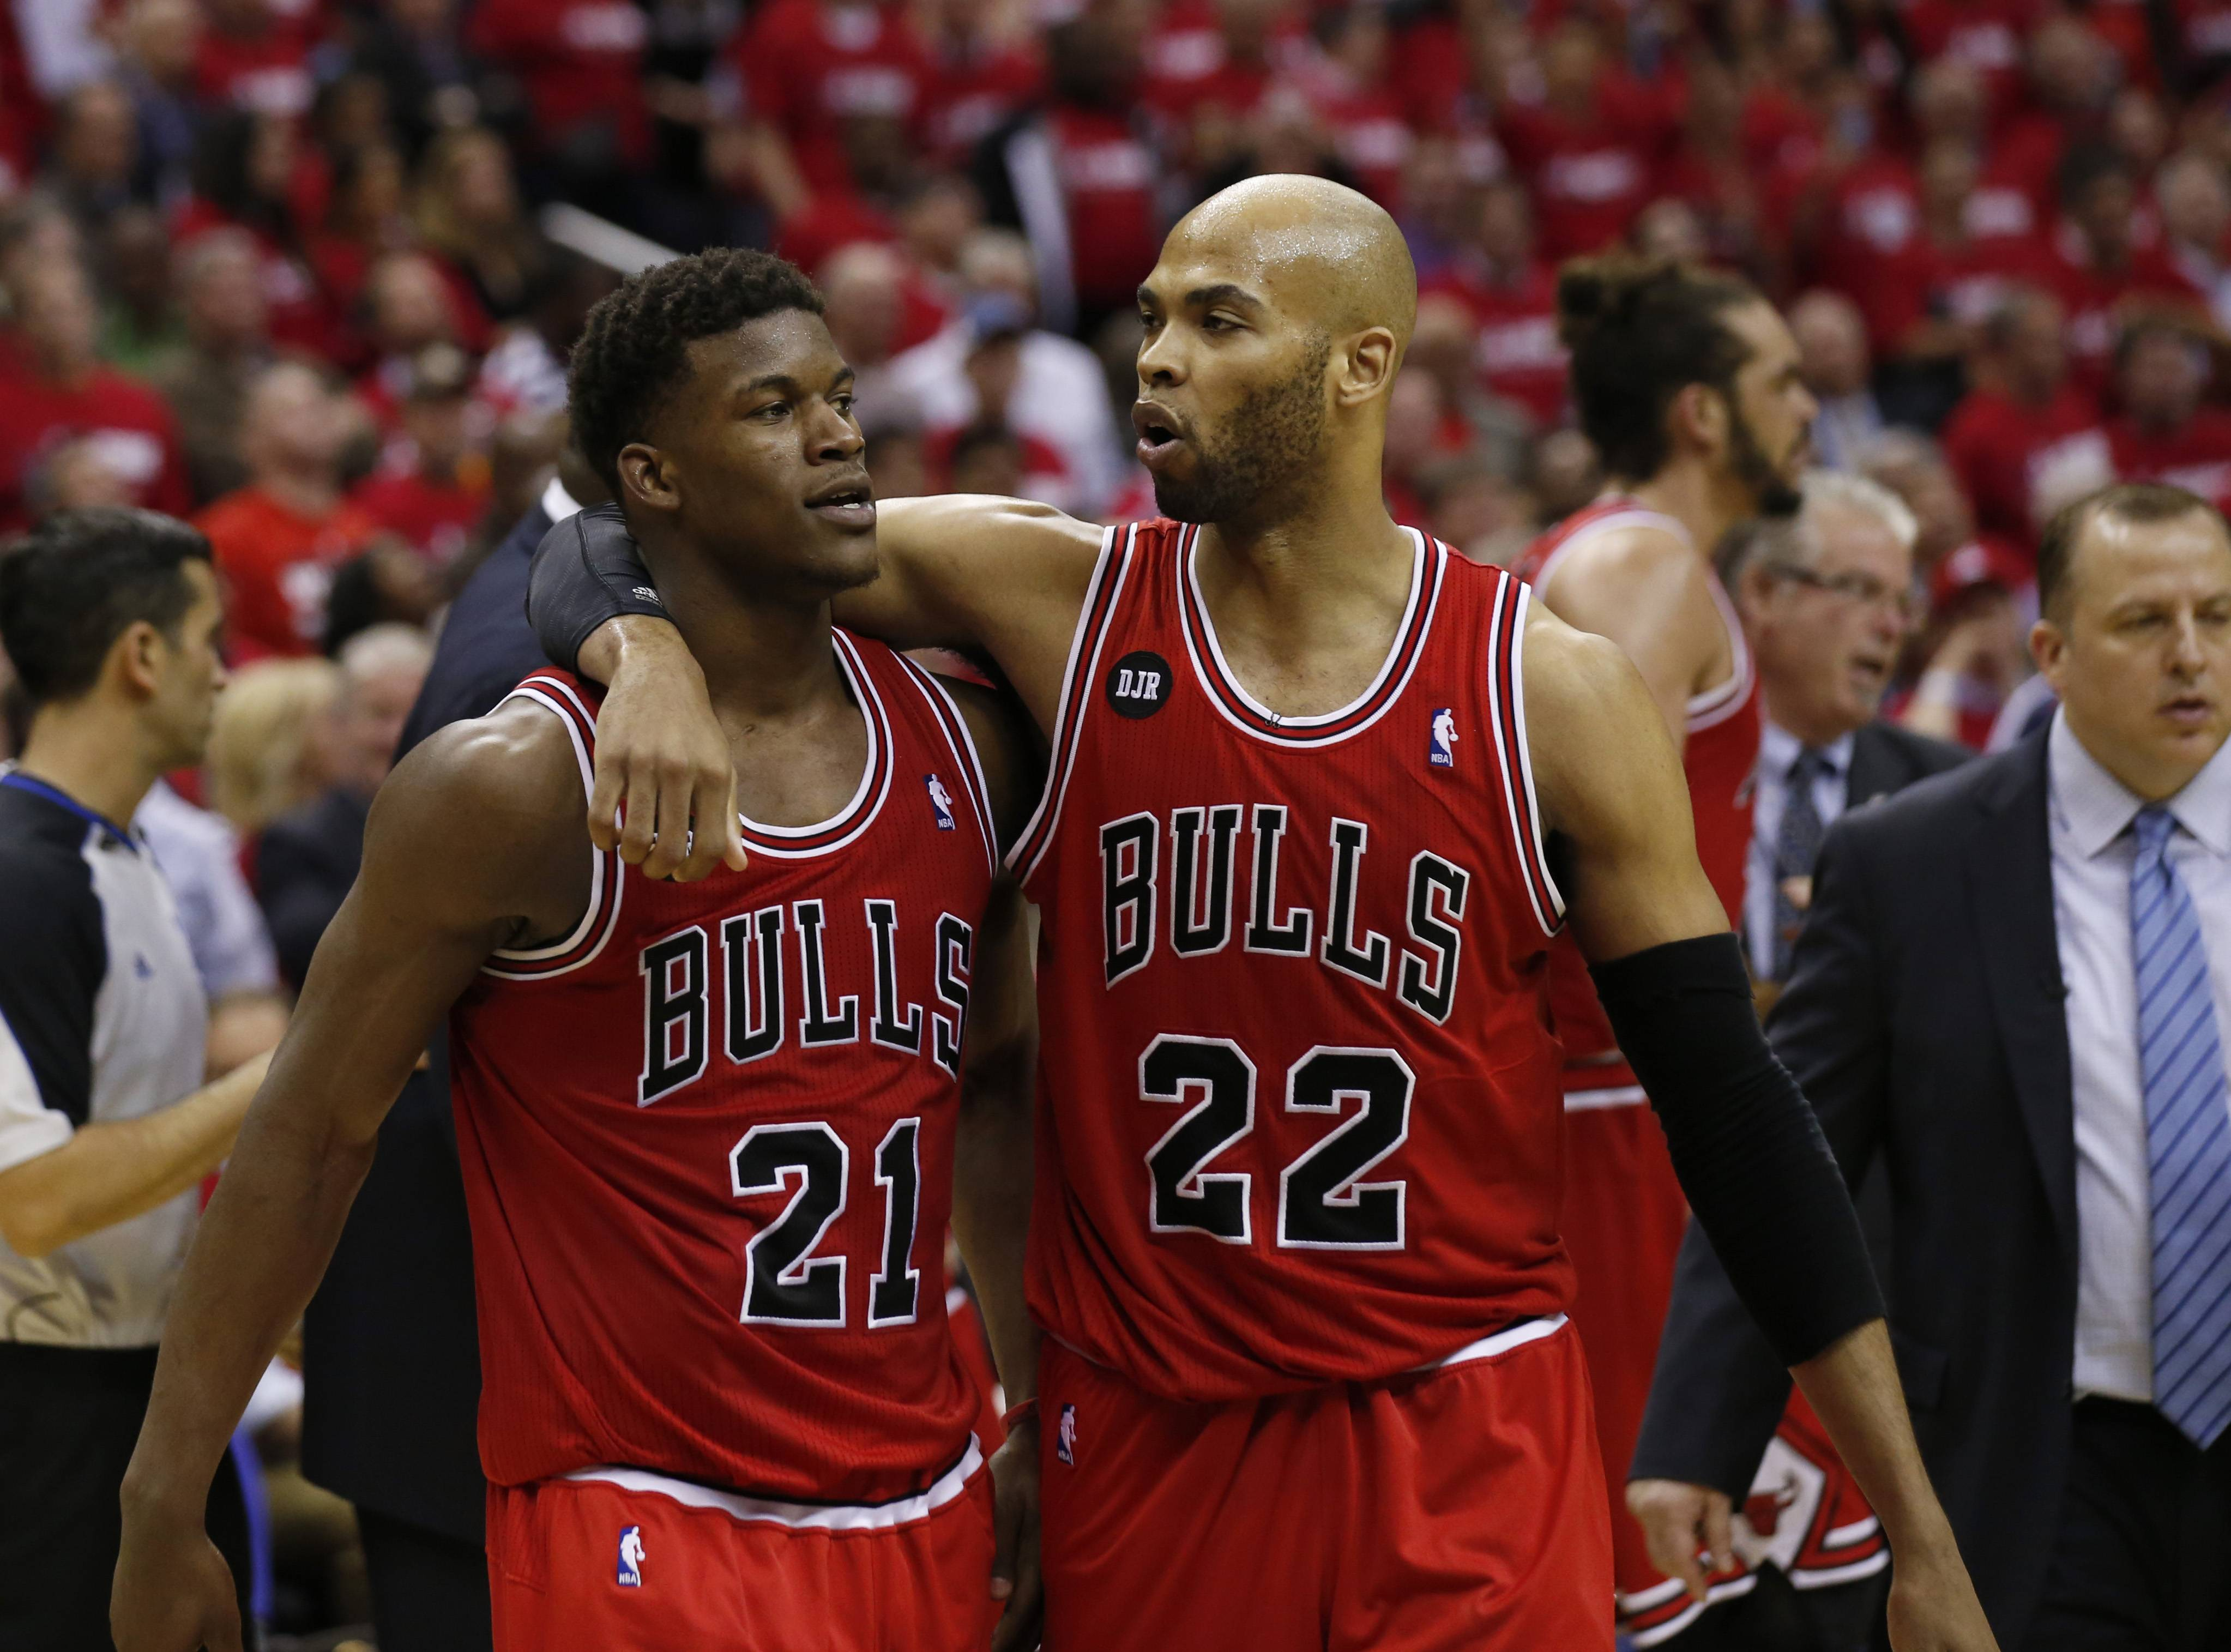 Bulls guard Jimmy Butler (21) is pulled away by forward Taj Gibson (22) after an altercation with Washington Wizards forward Nene in the second half of Game 3 of an opening-round NBA basketball playoff series Friday night. Nene received a double technical and was ejected. The Bulls won 100-97.